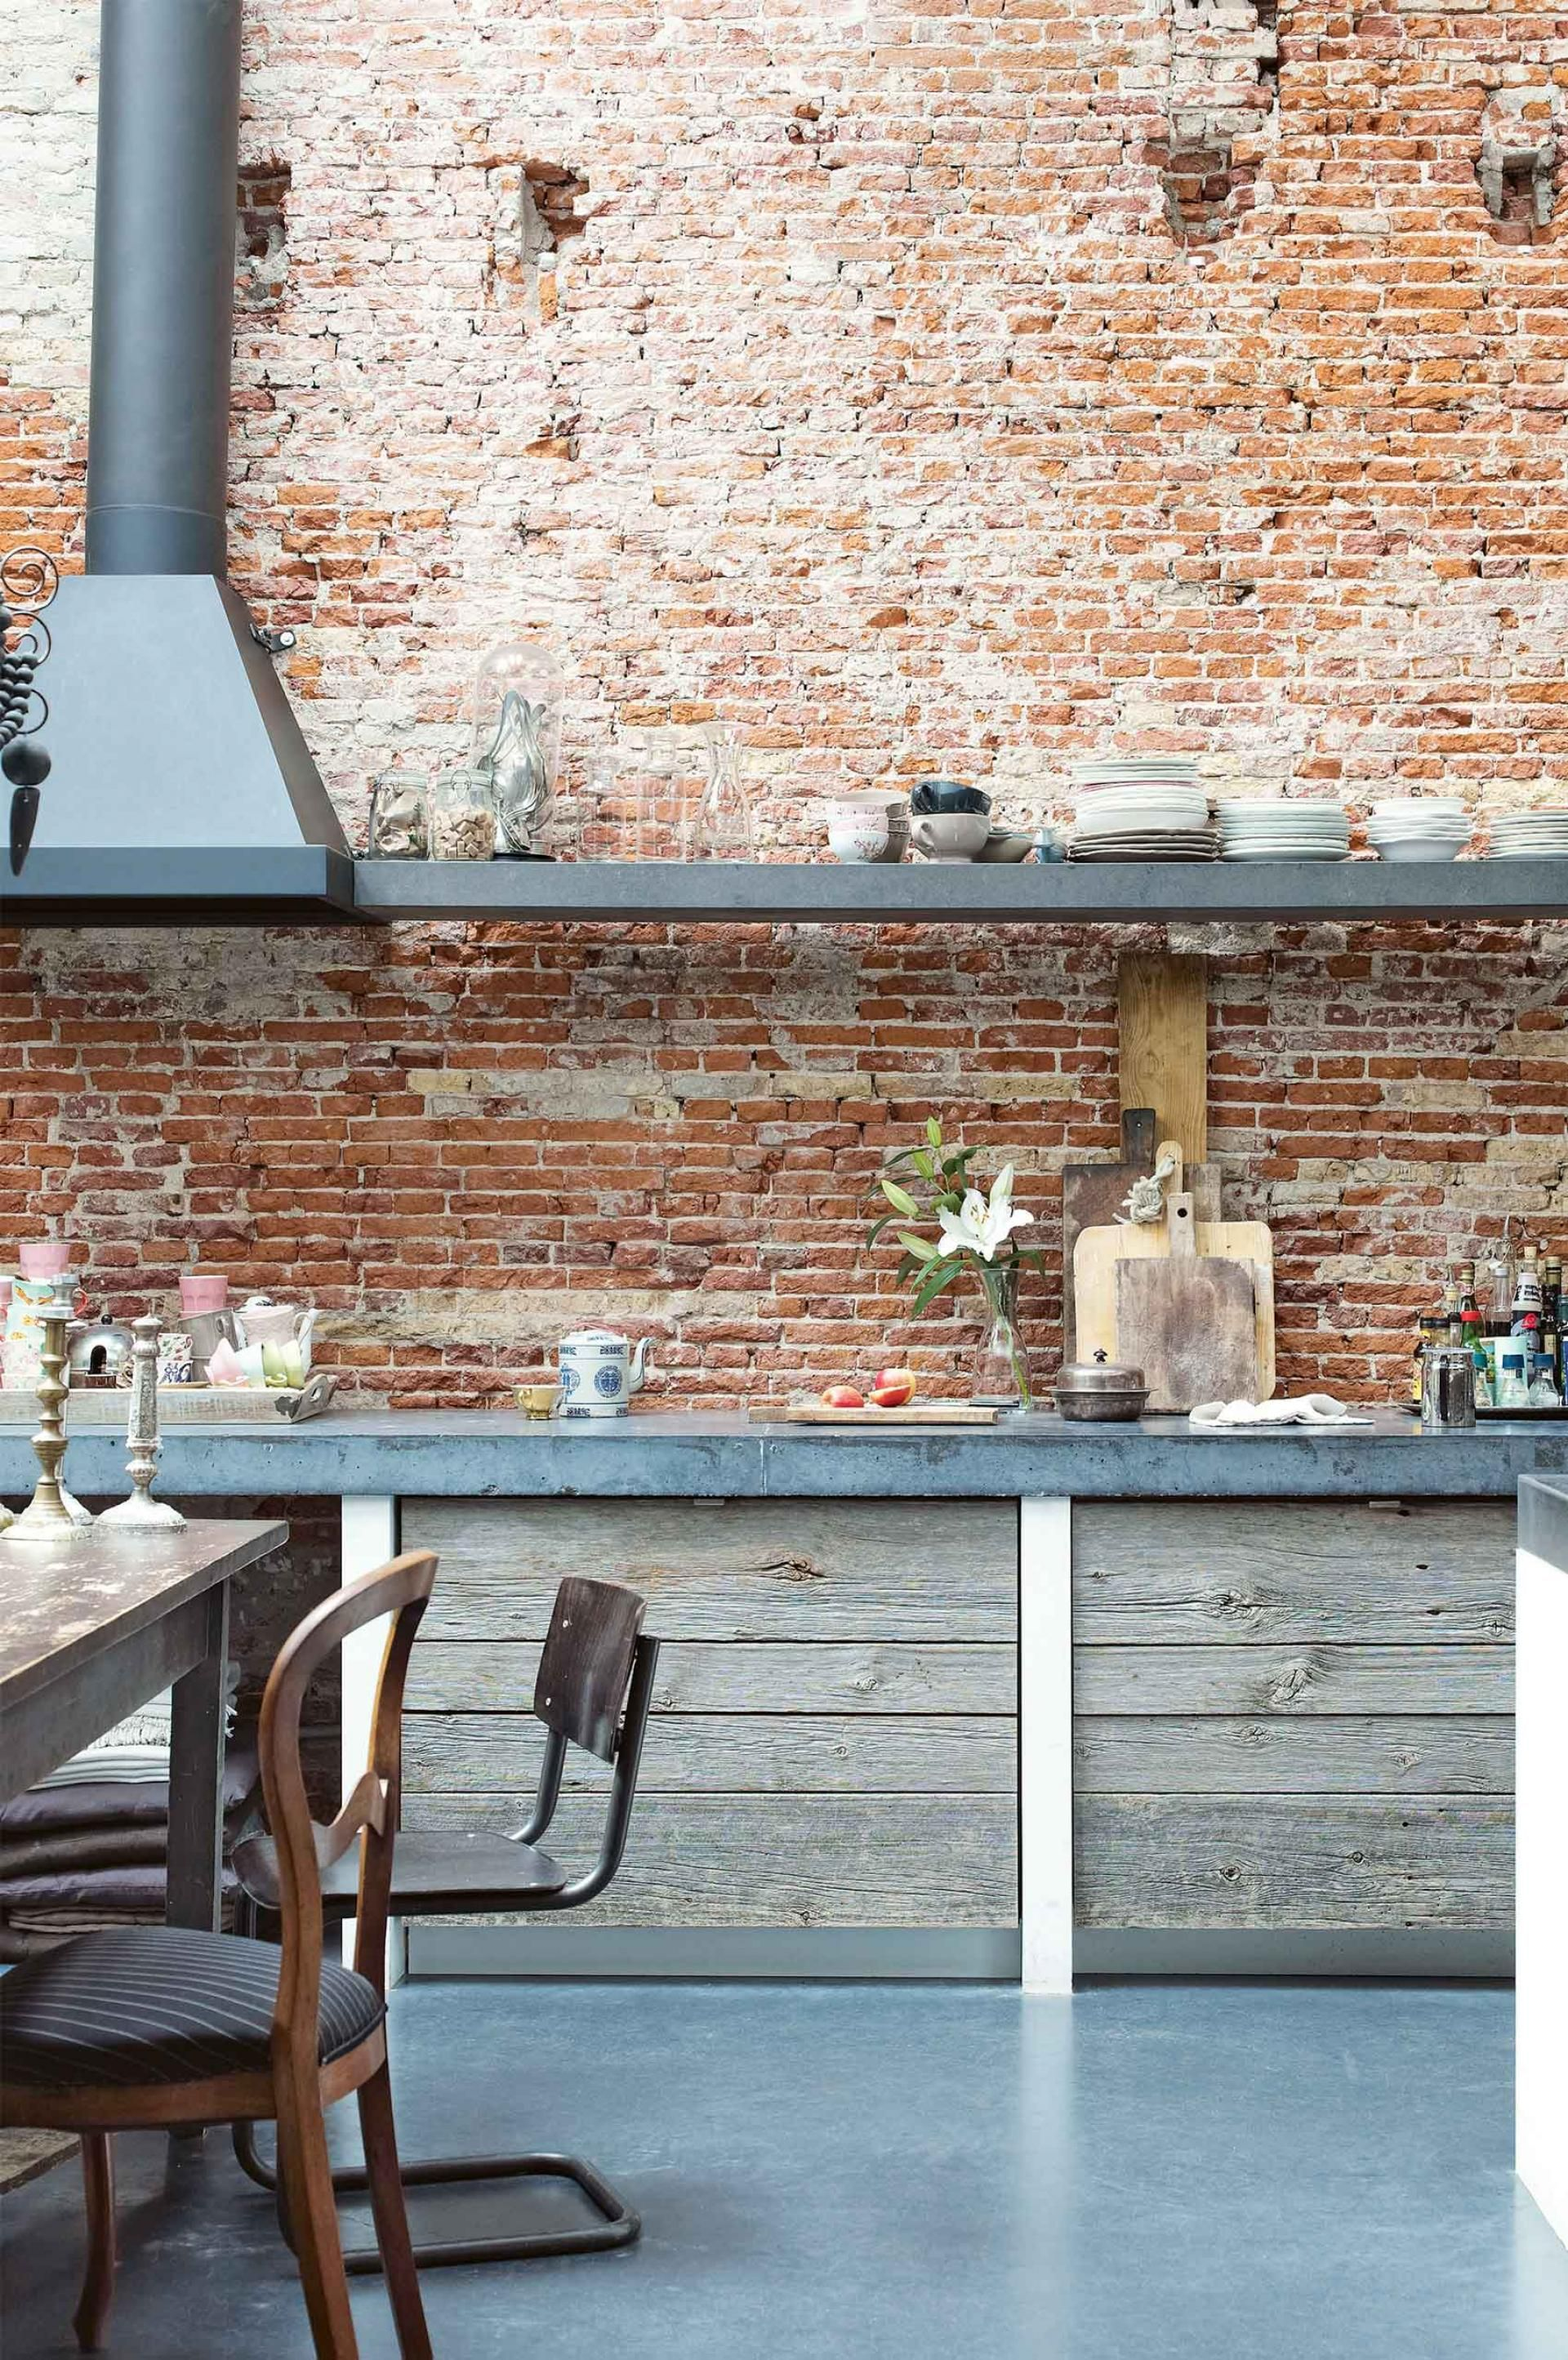 10 kitchen design ideas. Photography by Paul Massey/Timeincukcontent ...